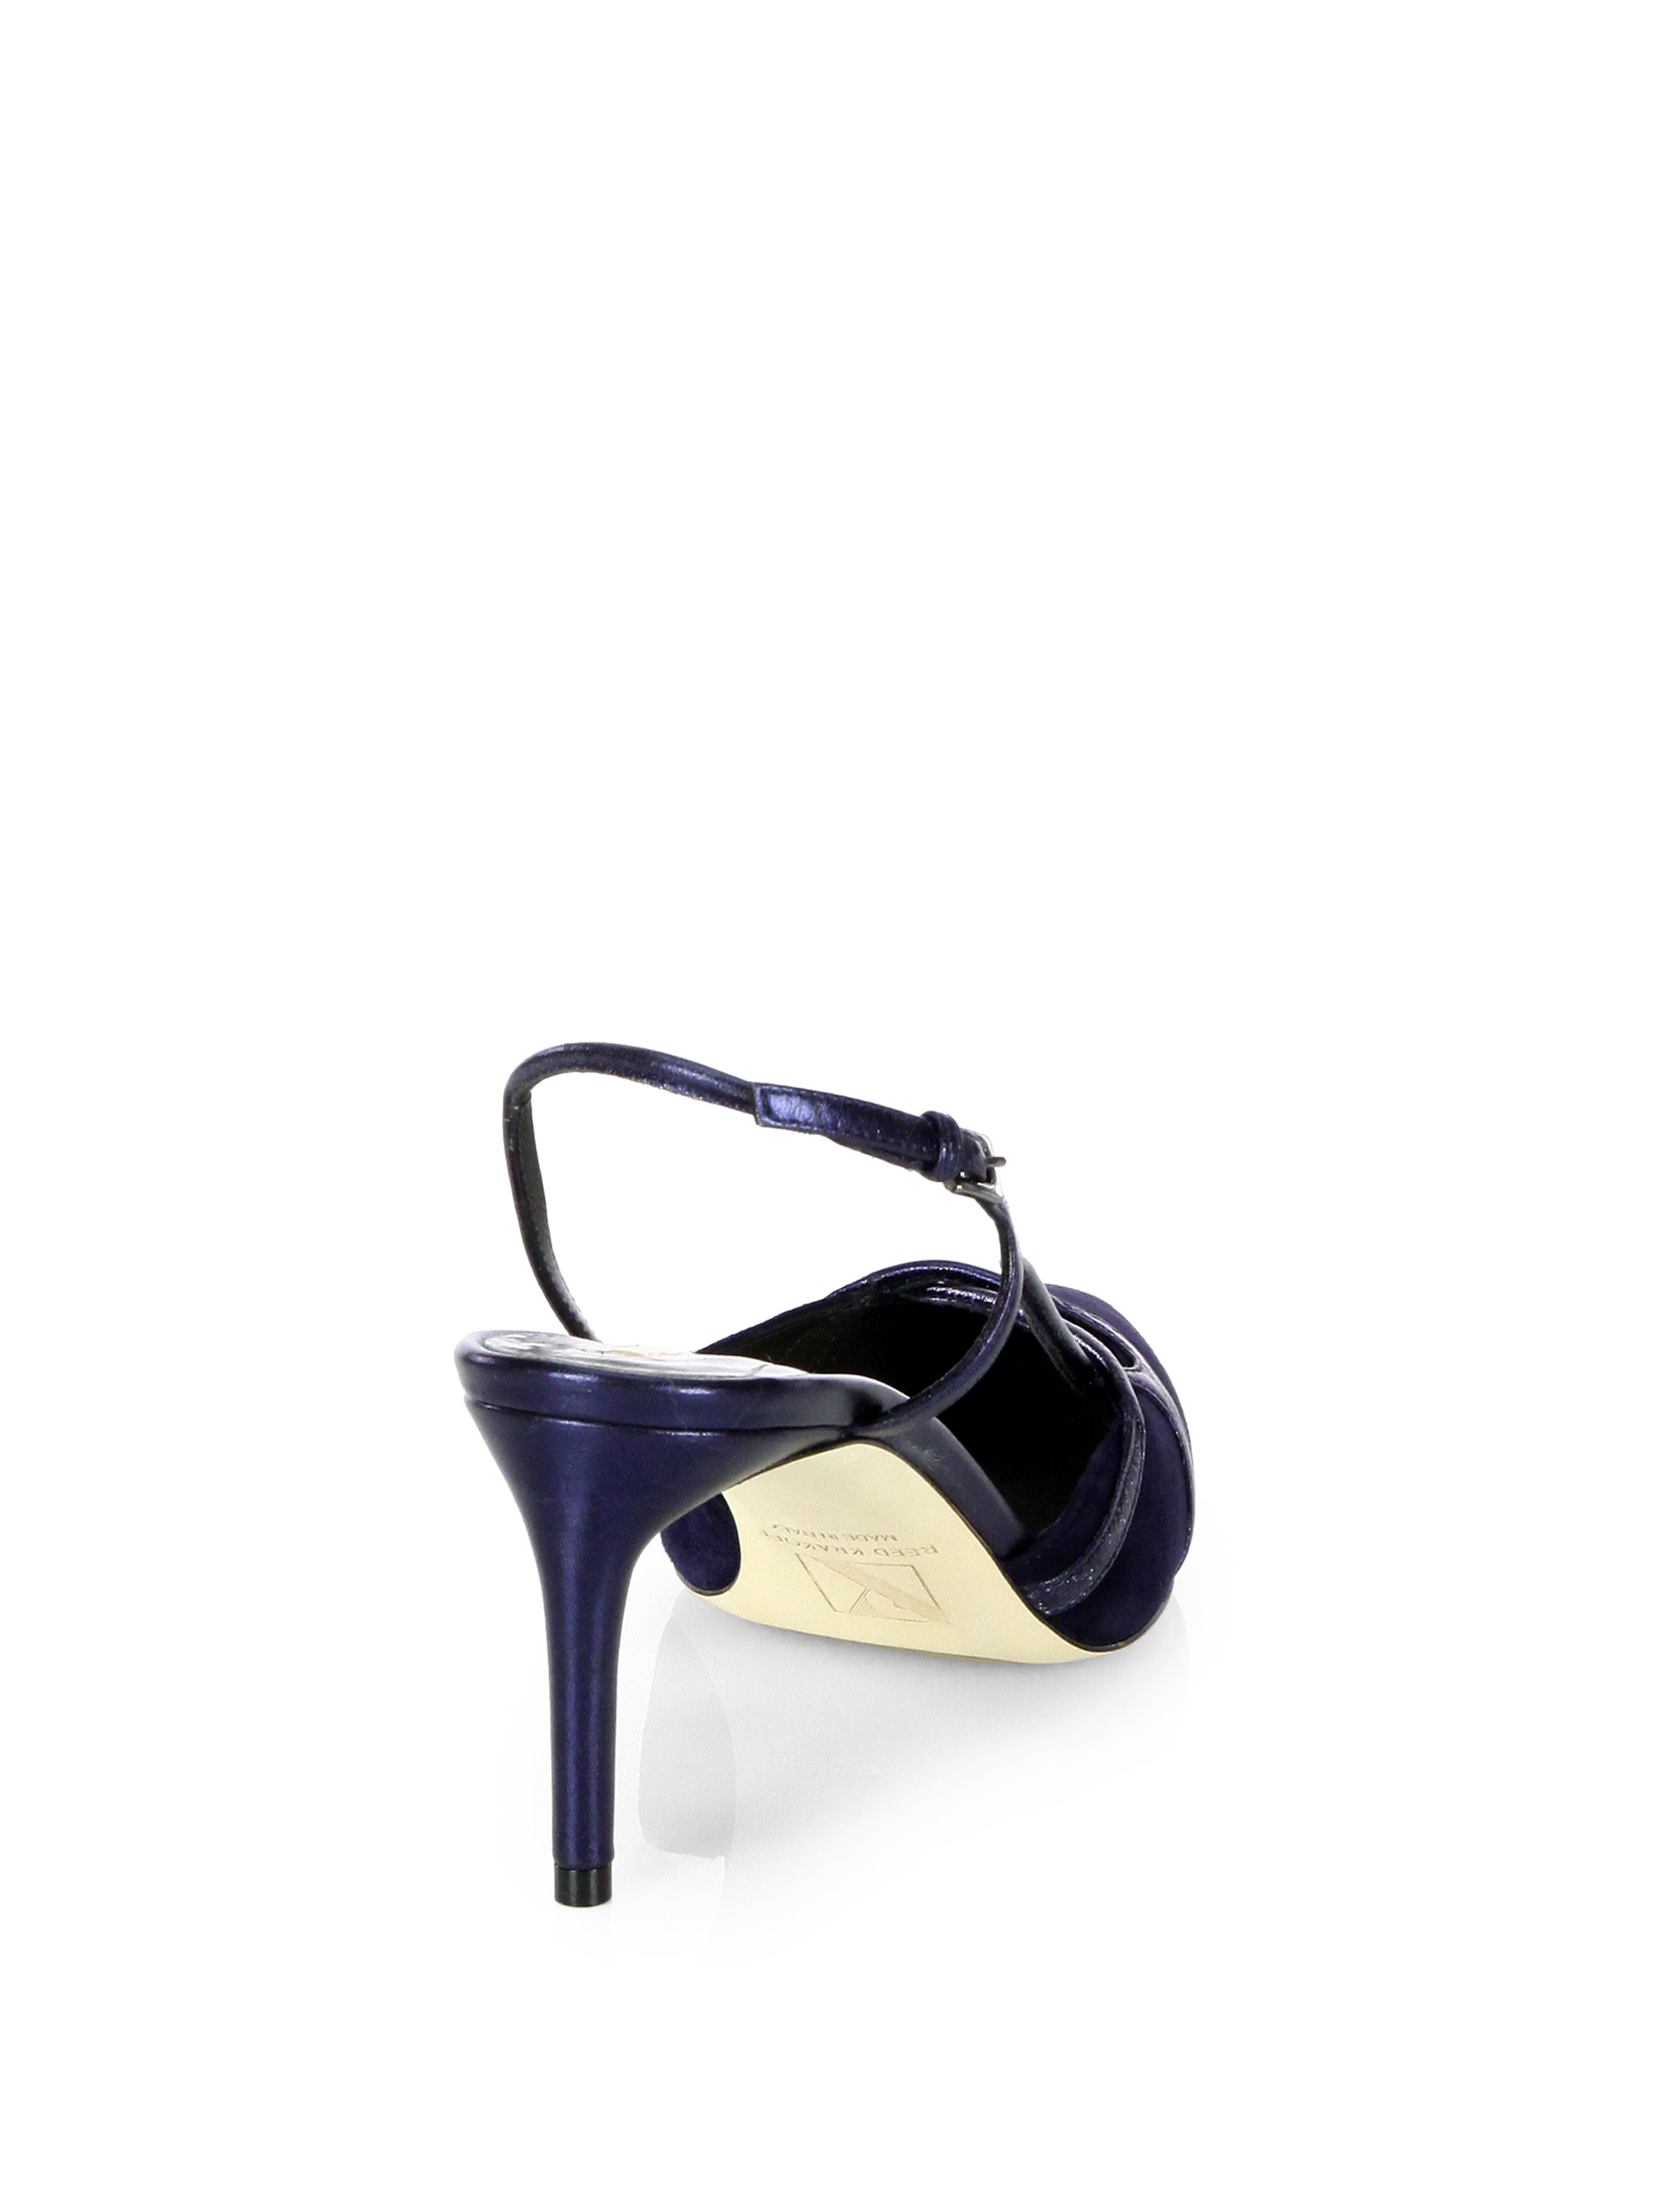 Reed Krakoff Leather Slingback Pumps clearance clearance clearance buy YZBsS2cE